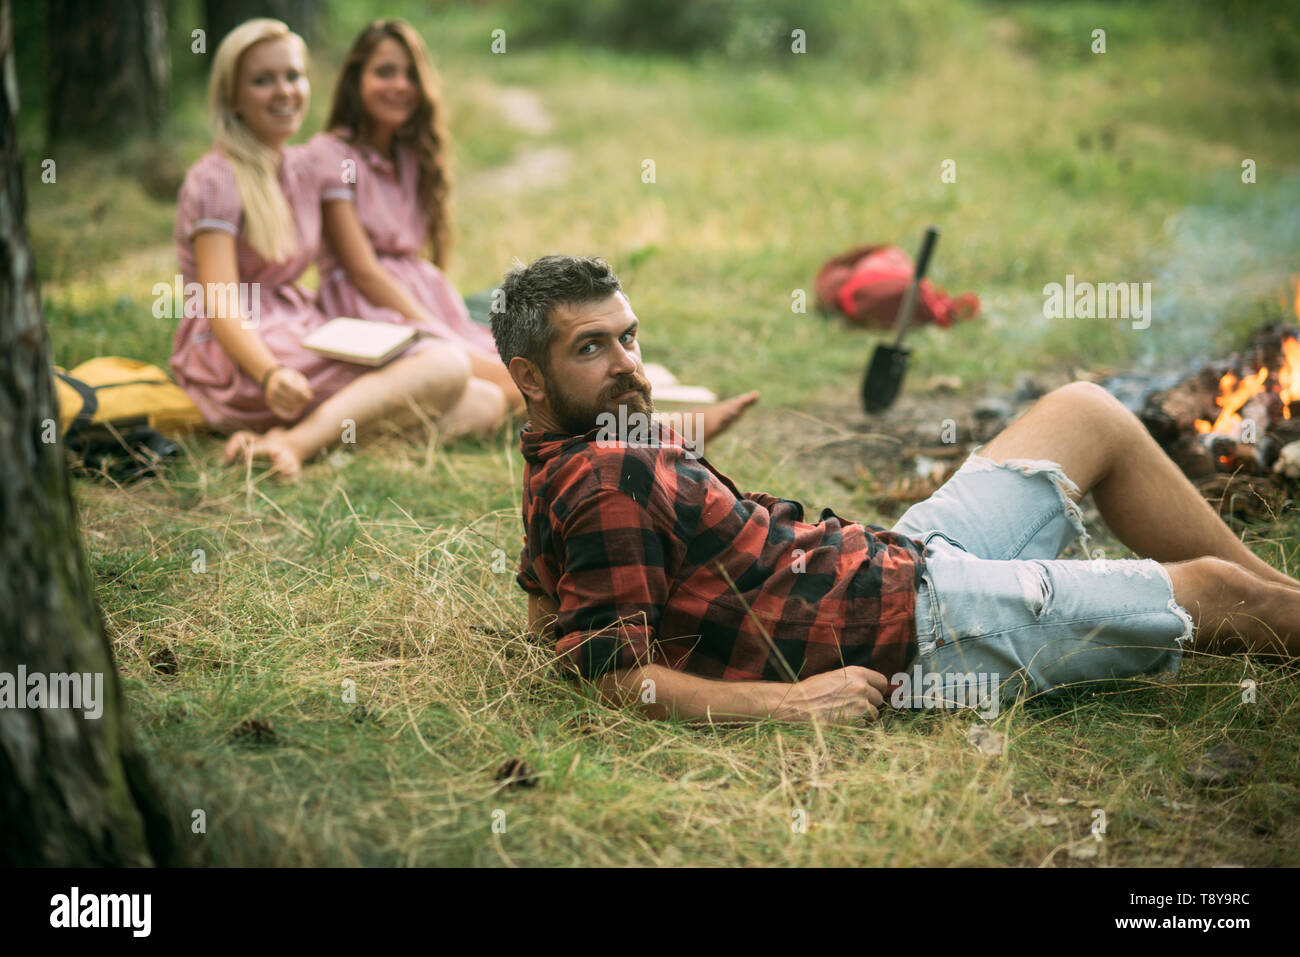 Bearded man in lumberjack shirt lying on grass, unity with nature concept. Group of young hikers camping in forest - Stock Image